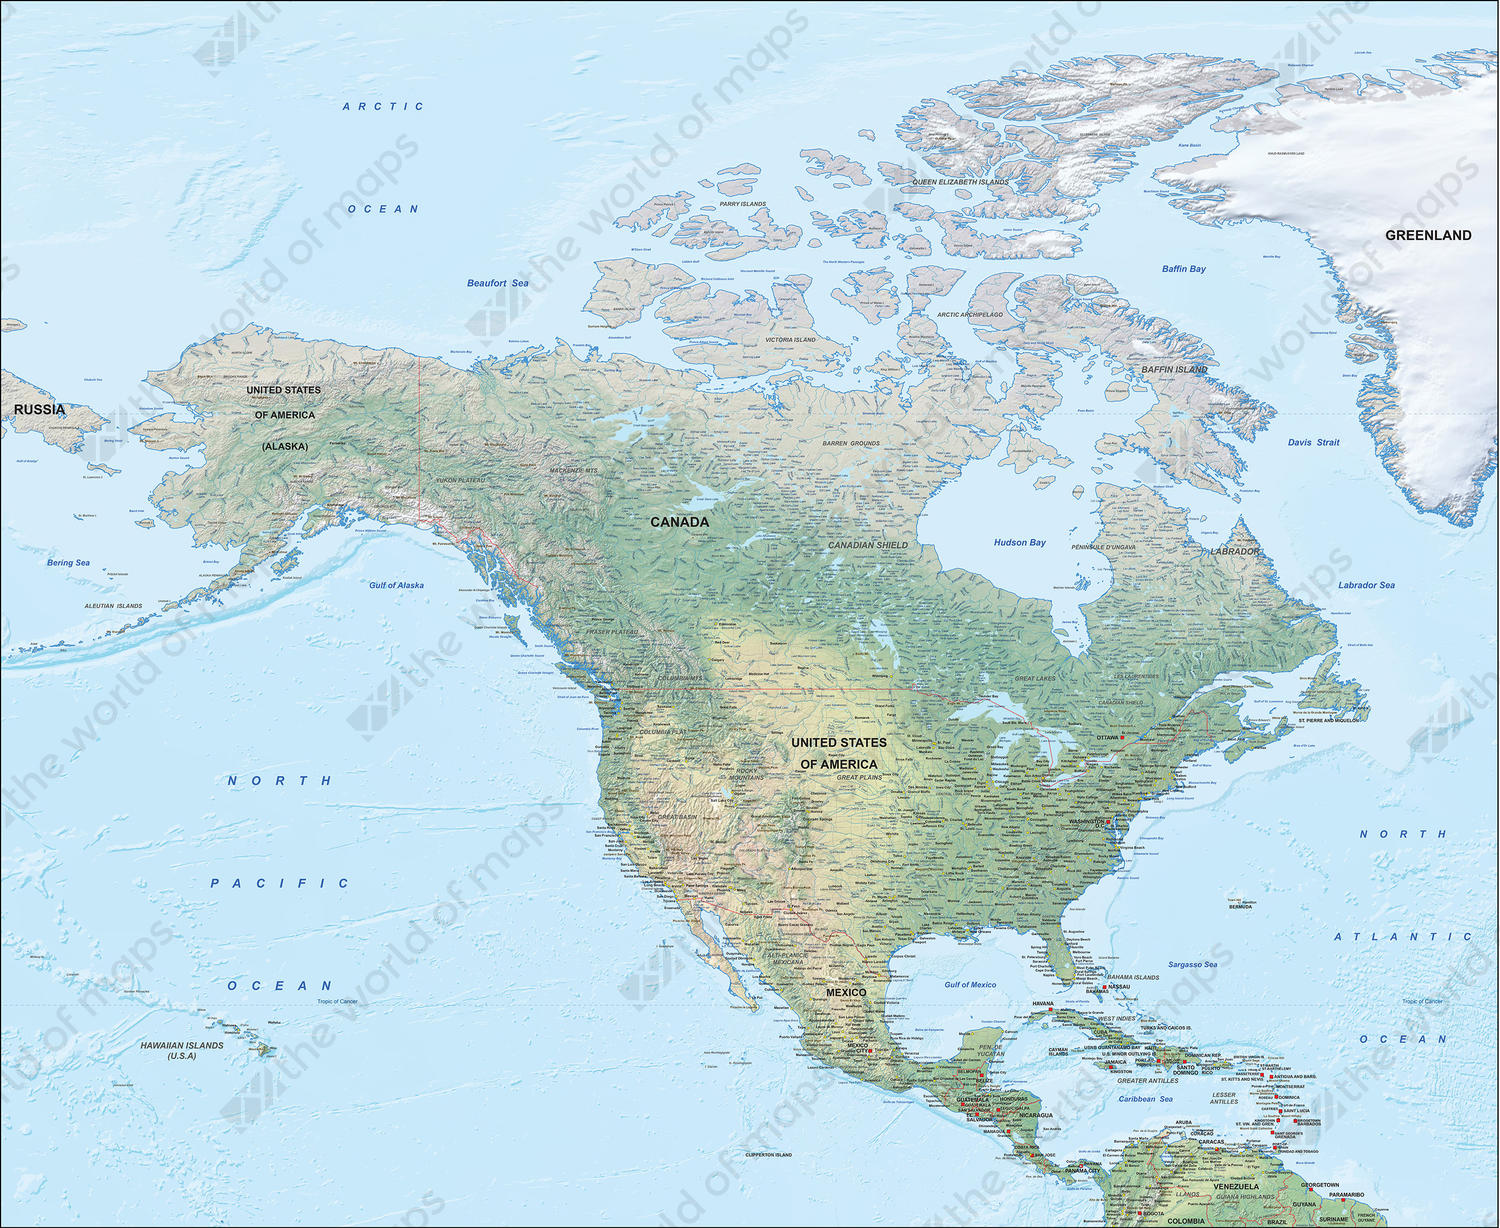 Digital Physical Map of North America 1285 | The World of Maps.com